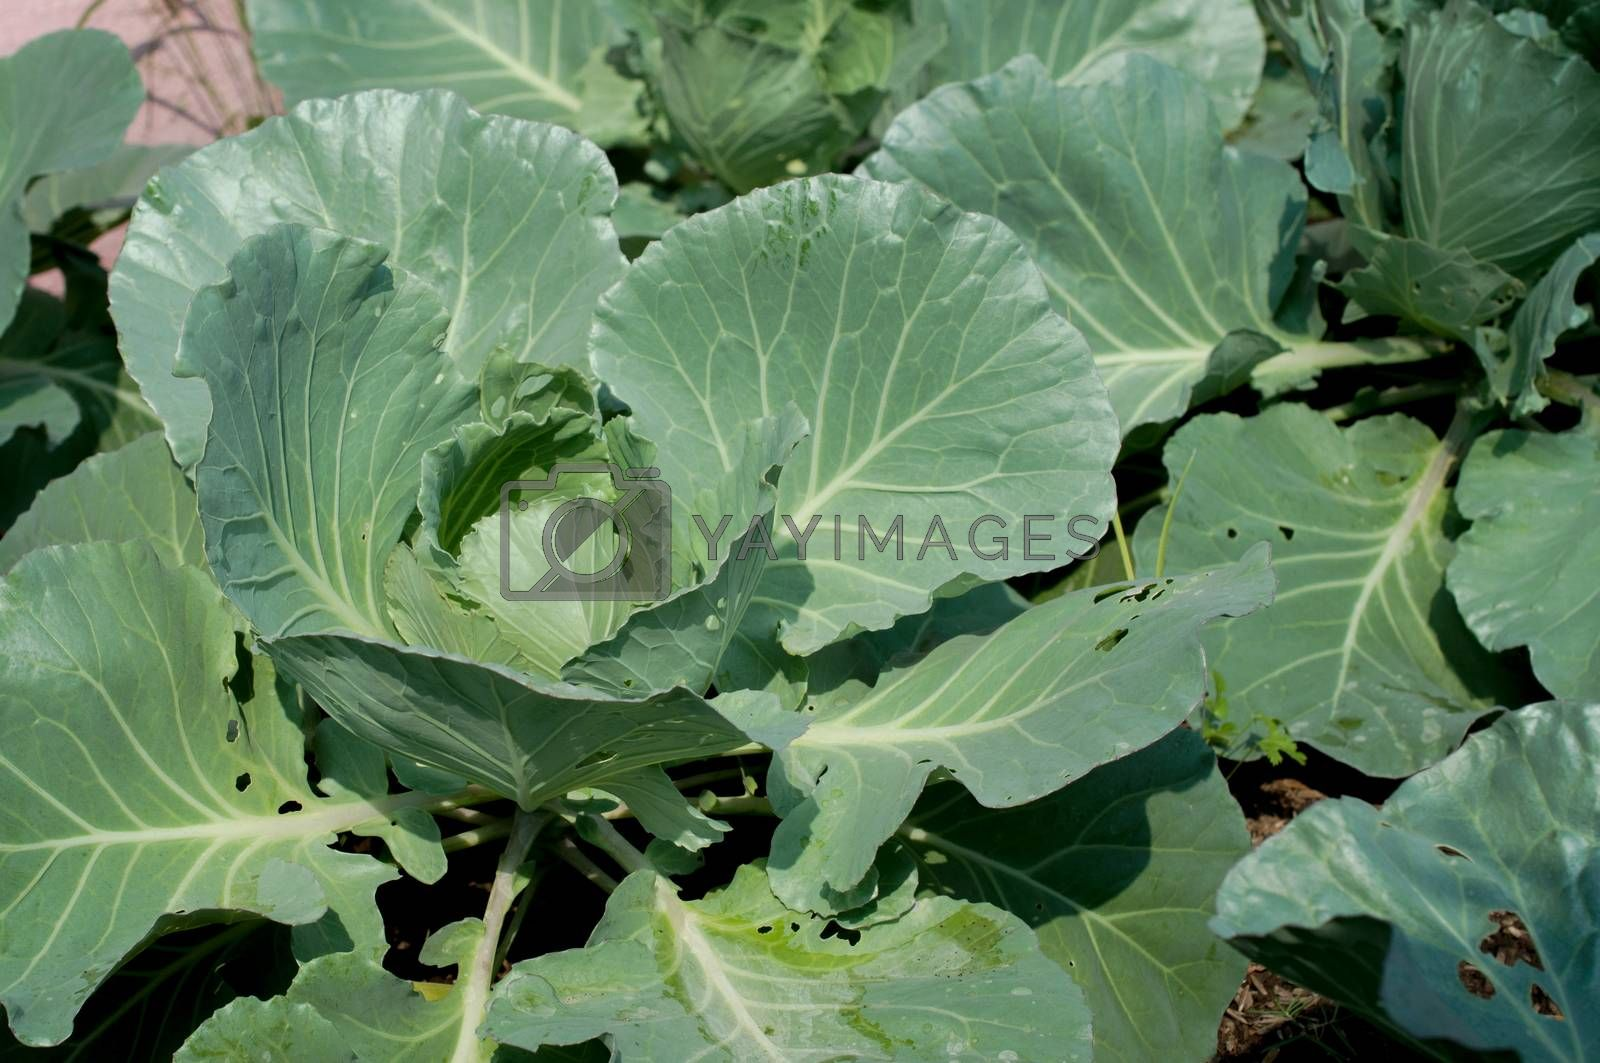 cabbages close up isolated on white background.